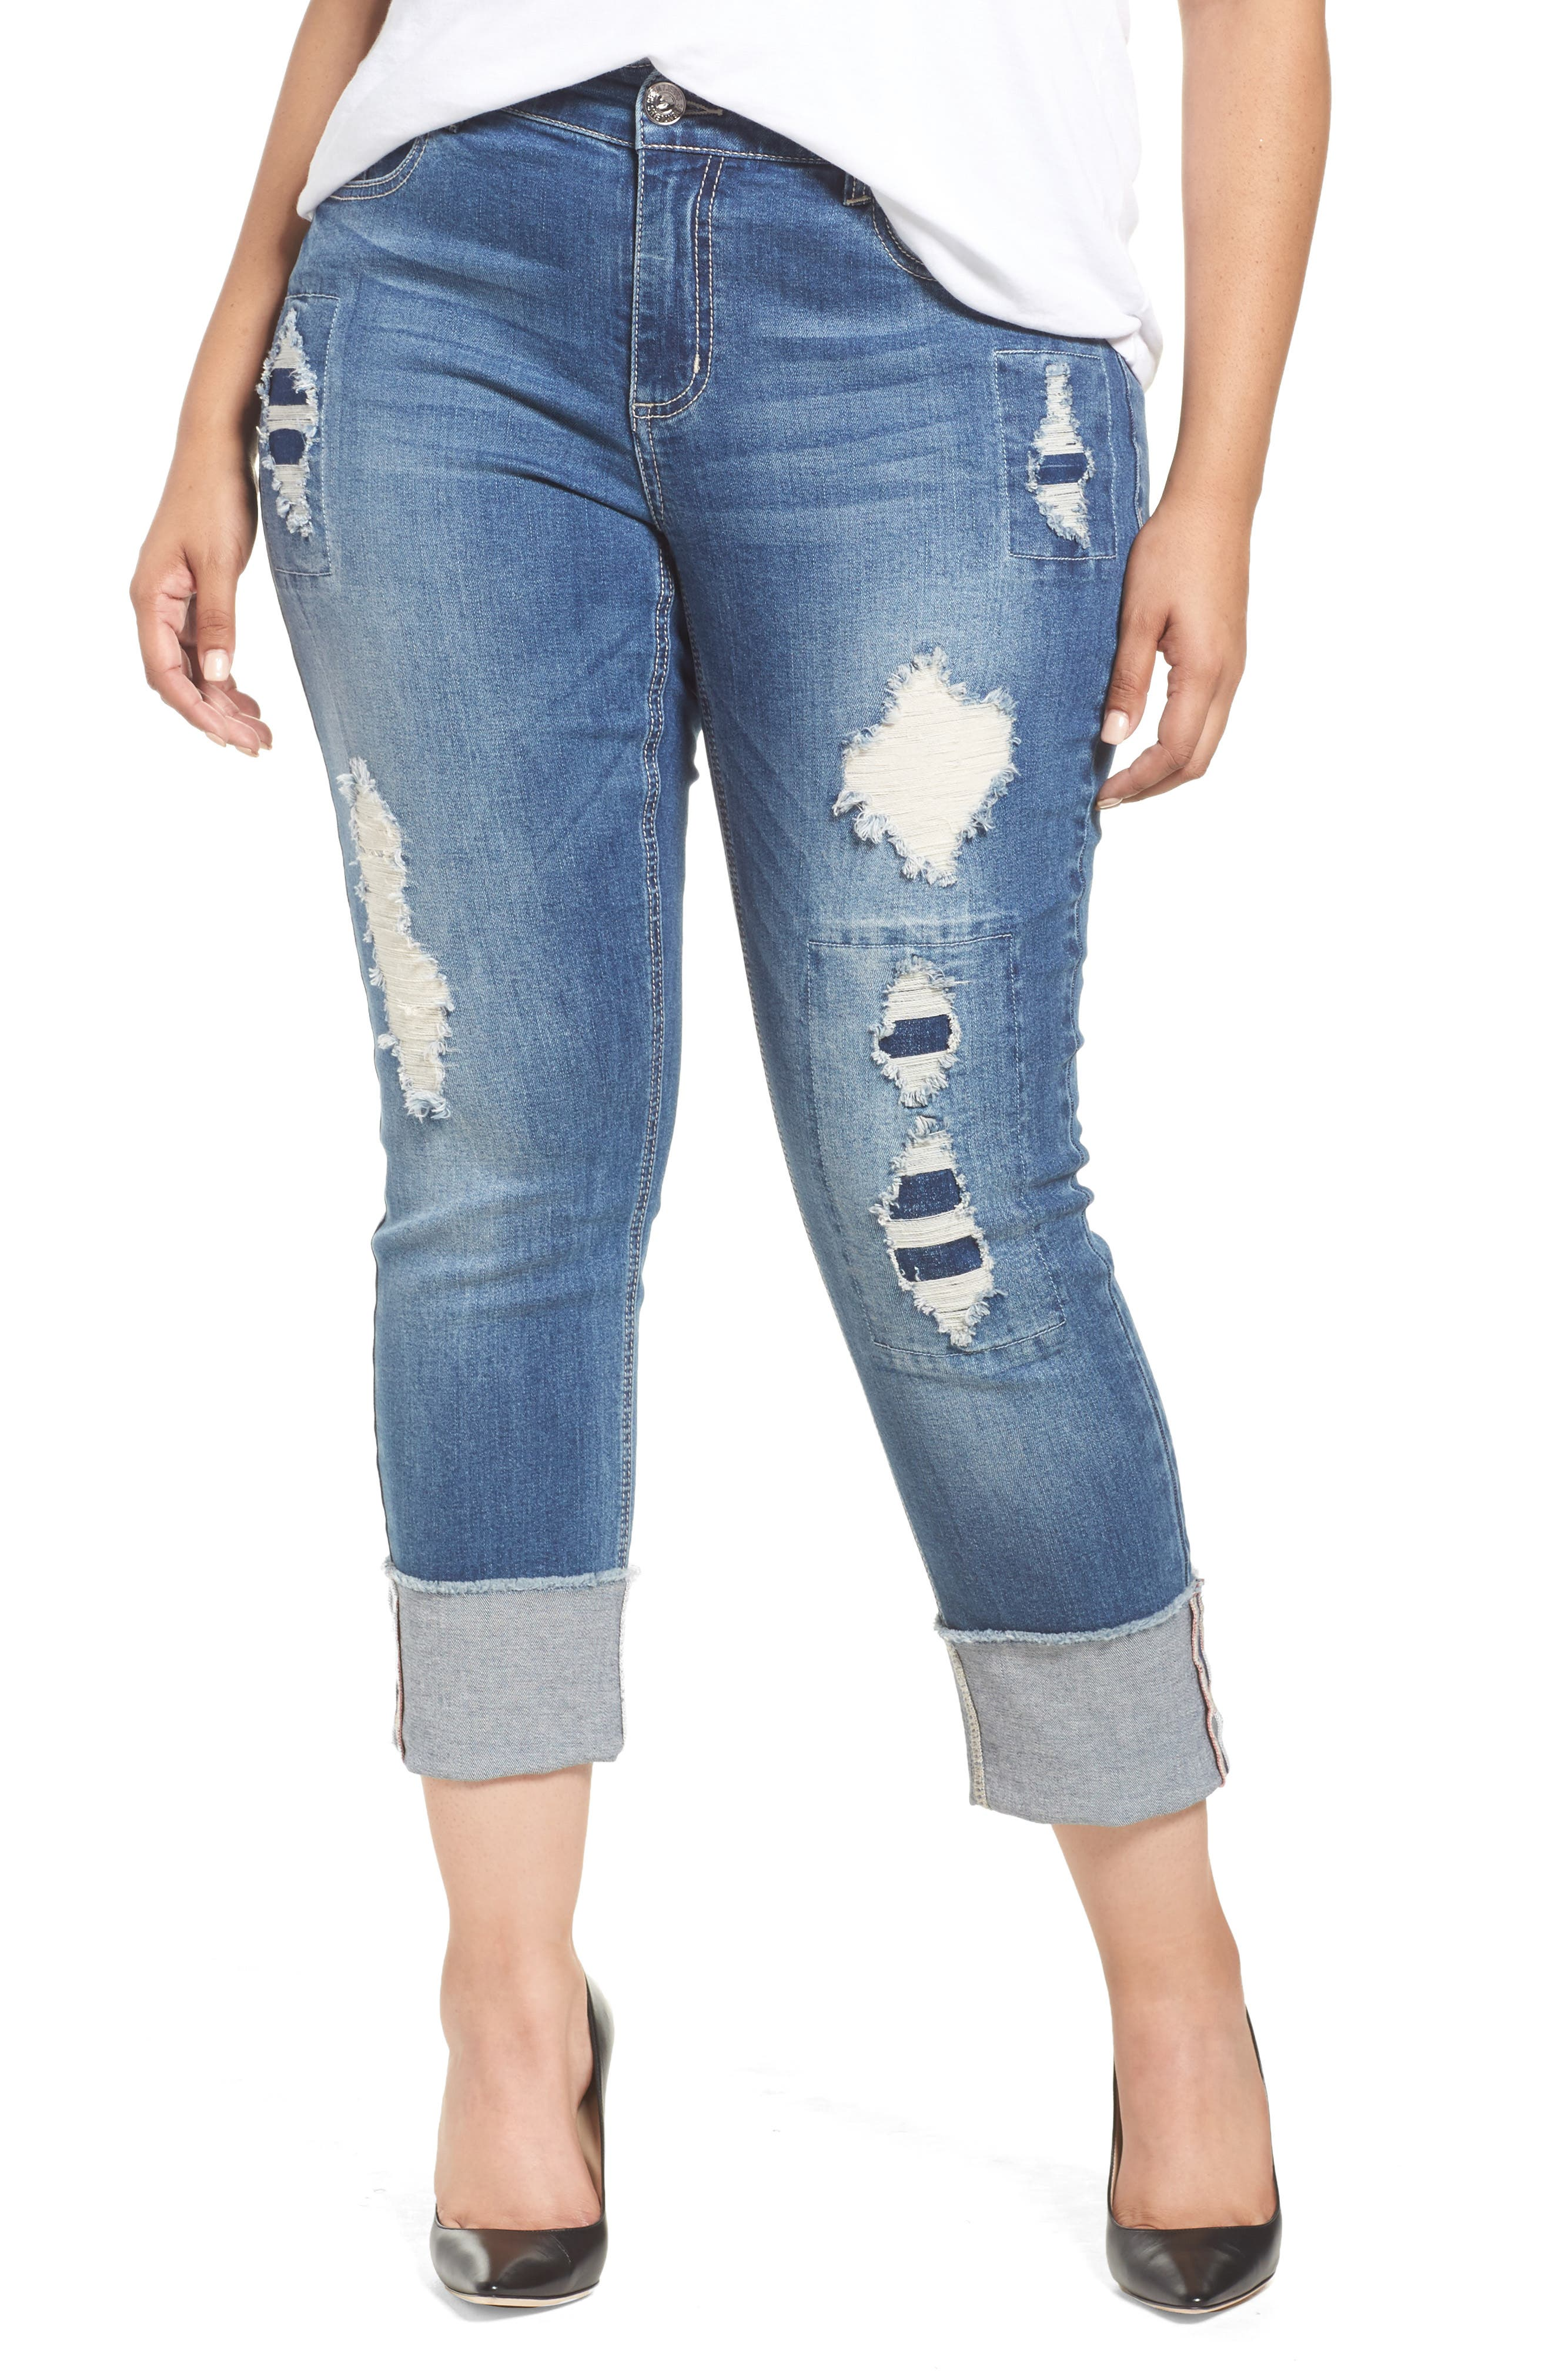 Alternate Image 1 Selected - Seven7 Distressed Slim Raw Hem Cuffed Jeans (Concorde) (Plus Size)